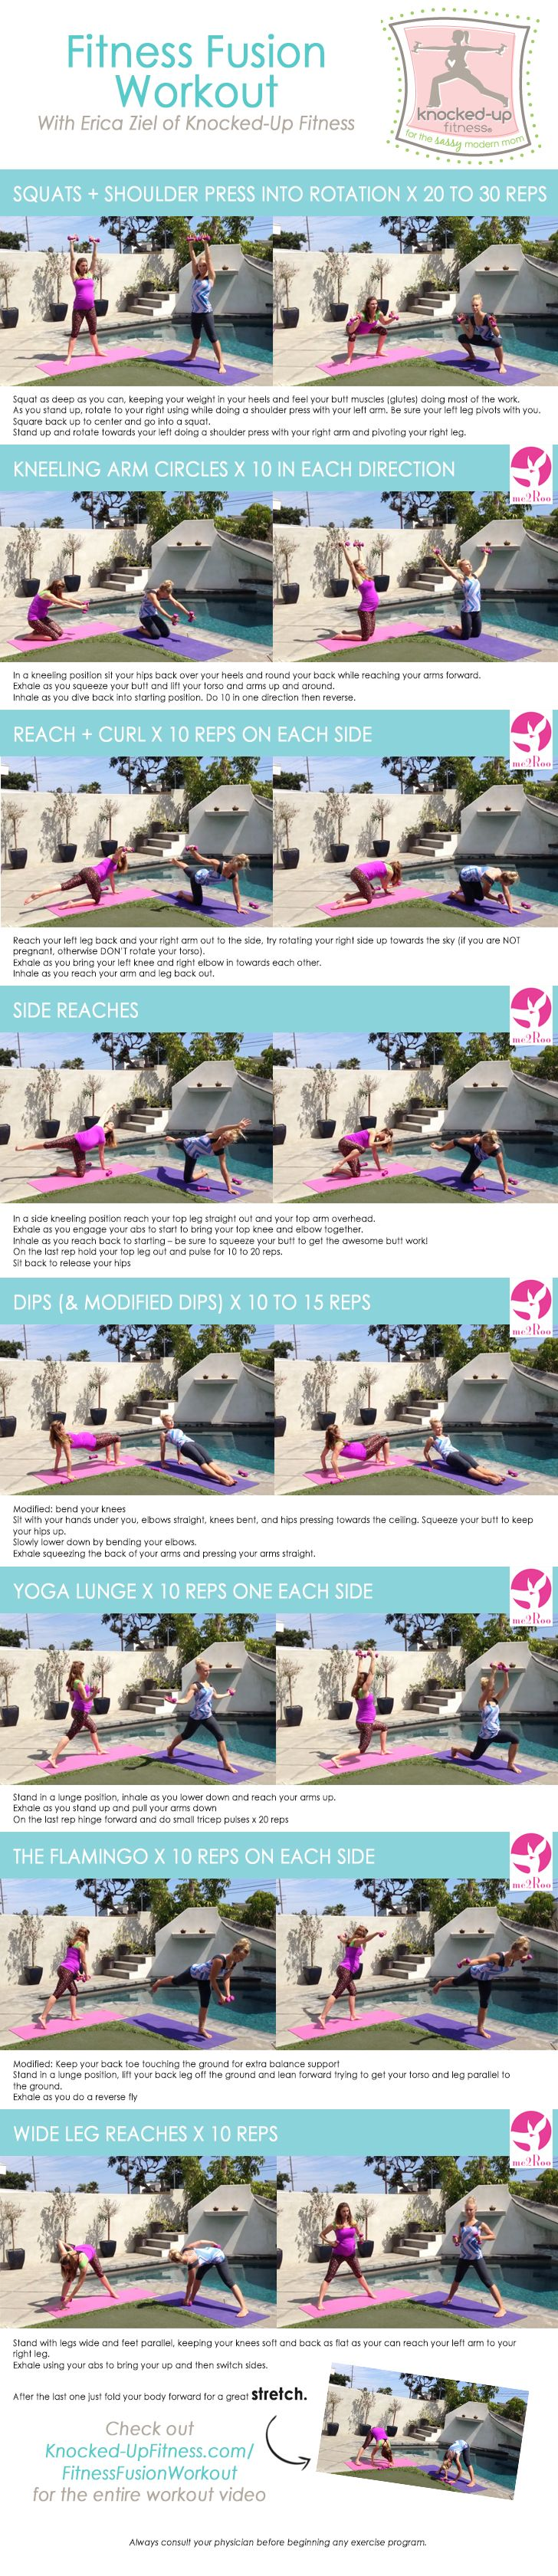 Fitness Fusion Workout Video